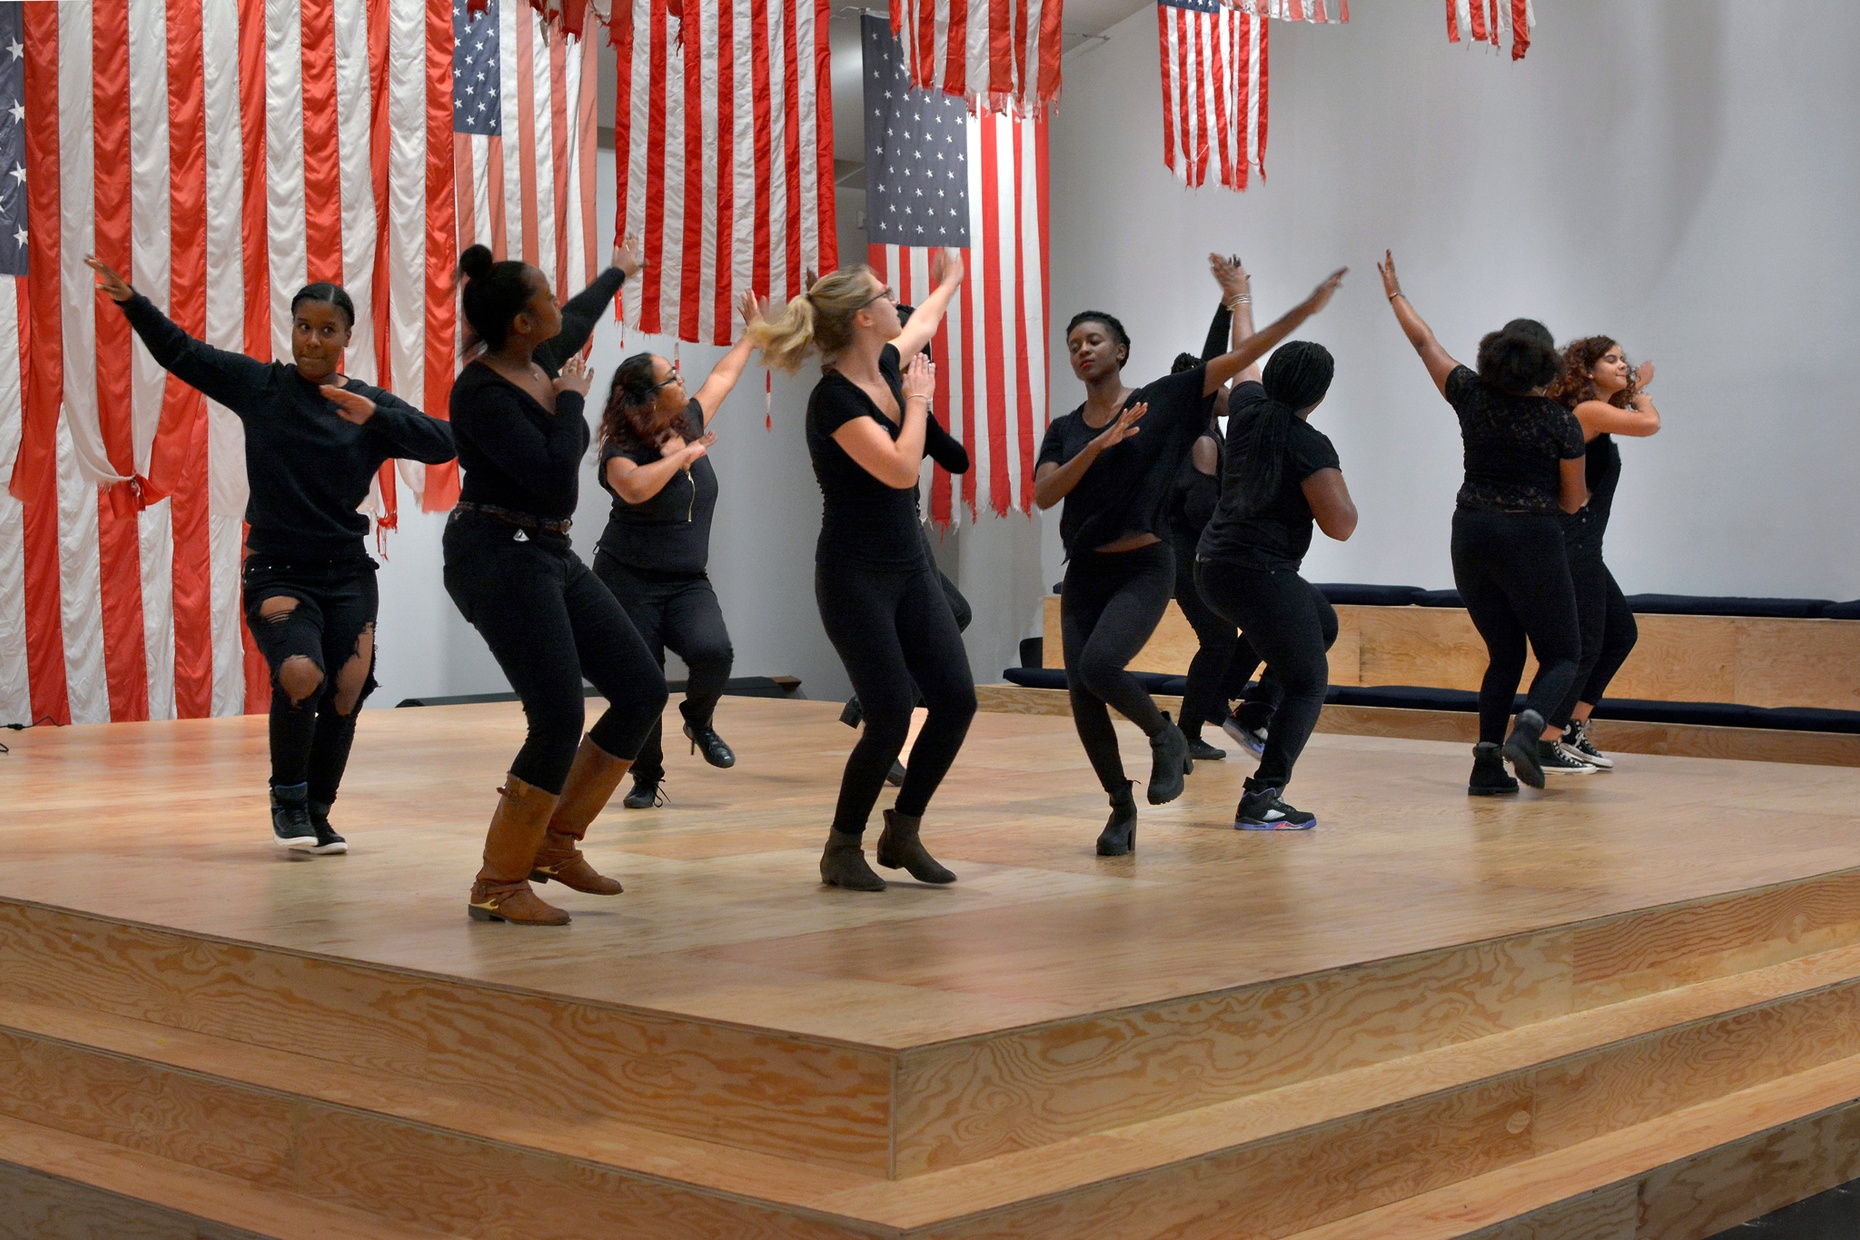 A group of people wearing black dance on a wooden stage surrounded by American flags hung from the ceiling.